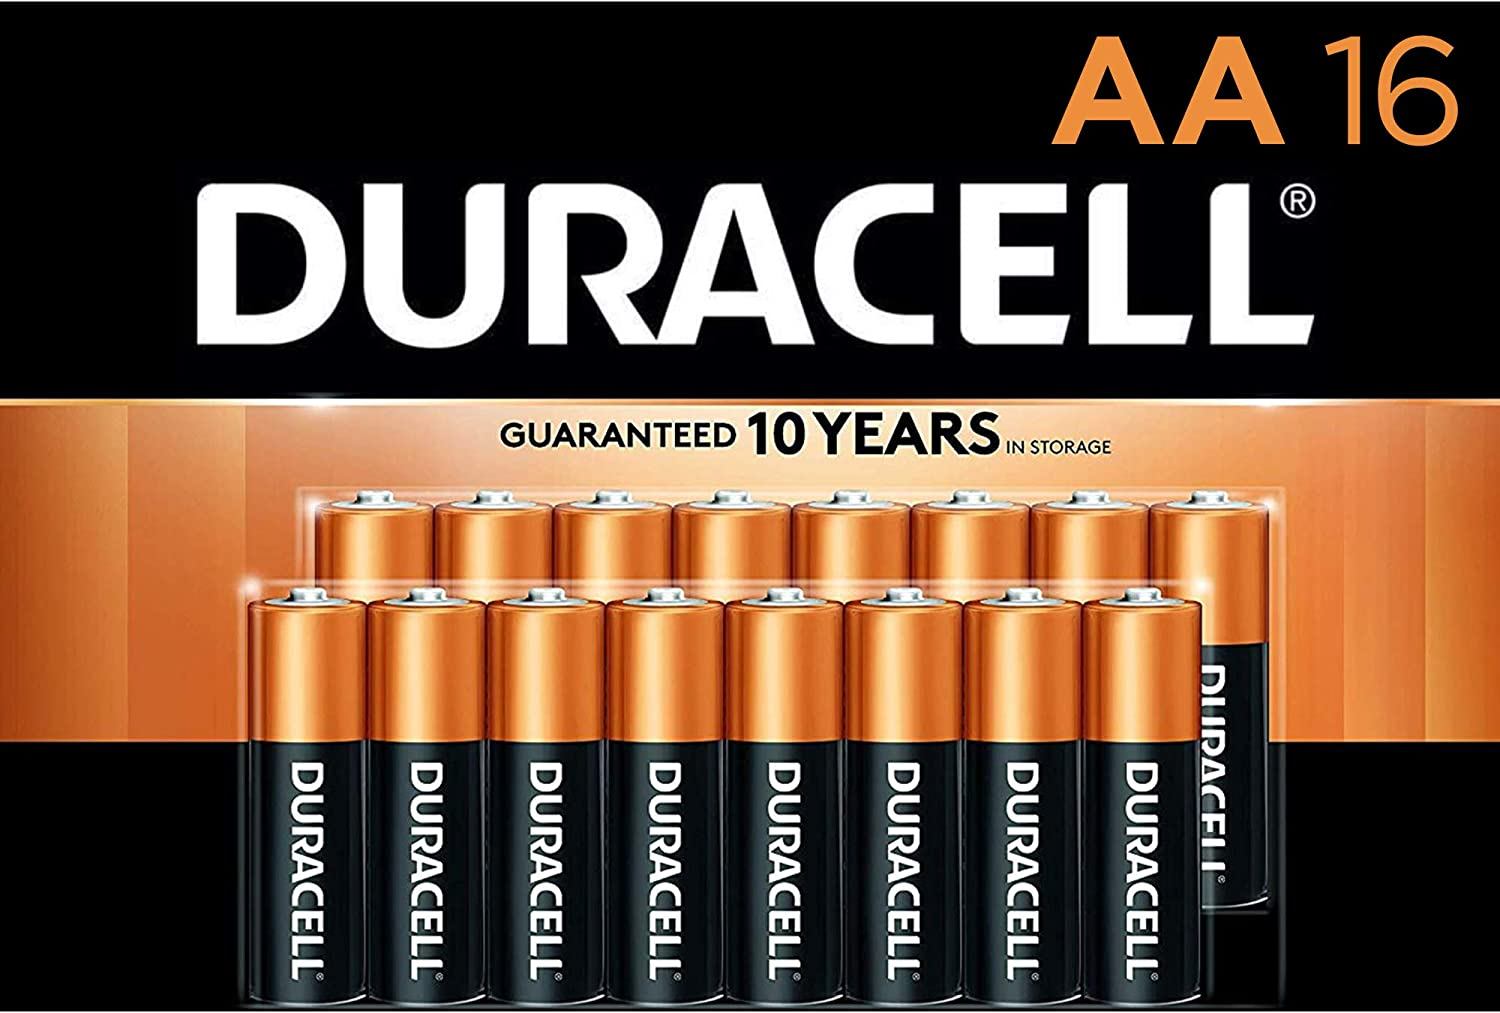 Amazon Com Duracell Coppertop Aa Alkaline Batteries Long Lasting All Purpose Double A Battery For Household And Business 16 Count Electronics